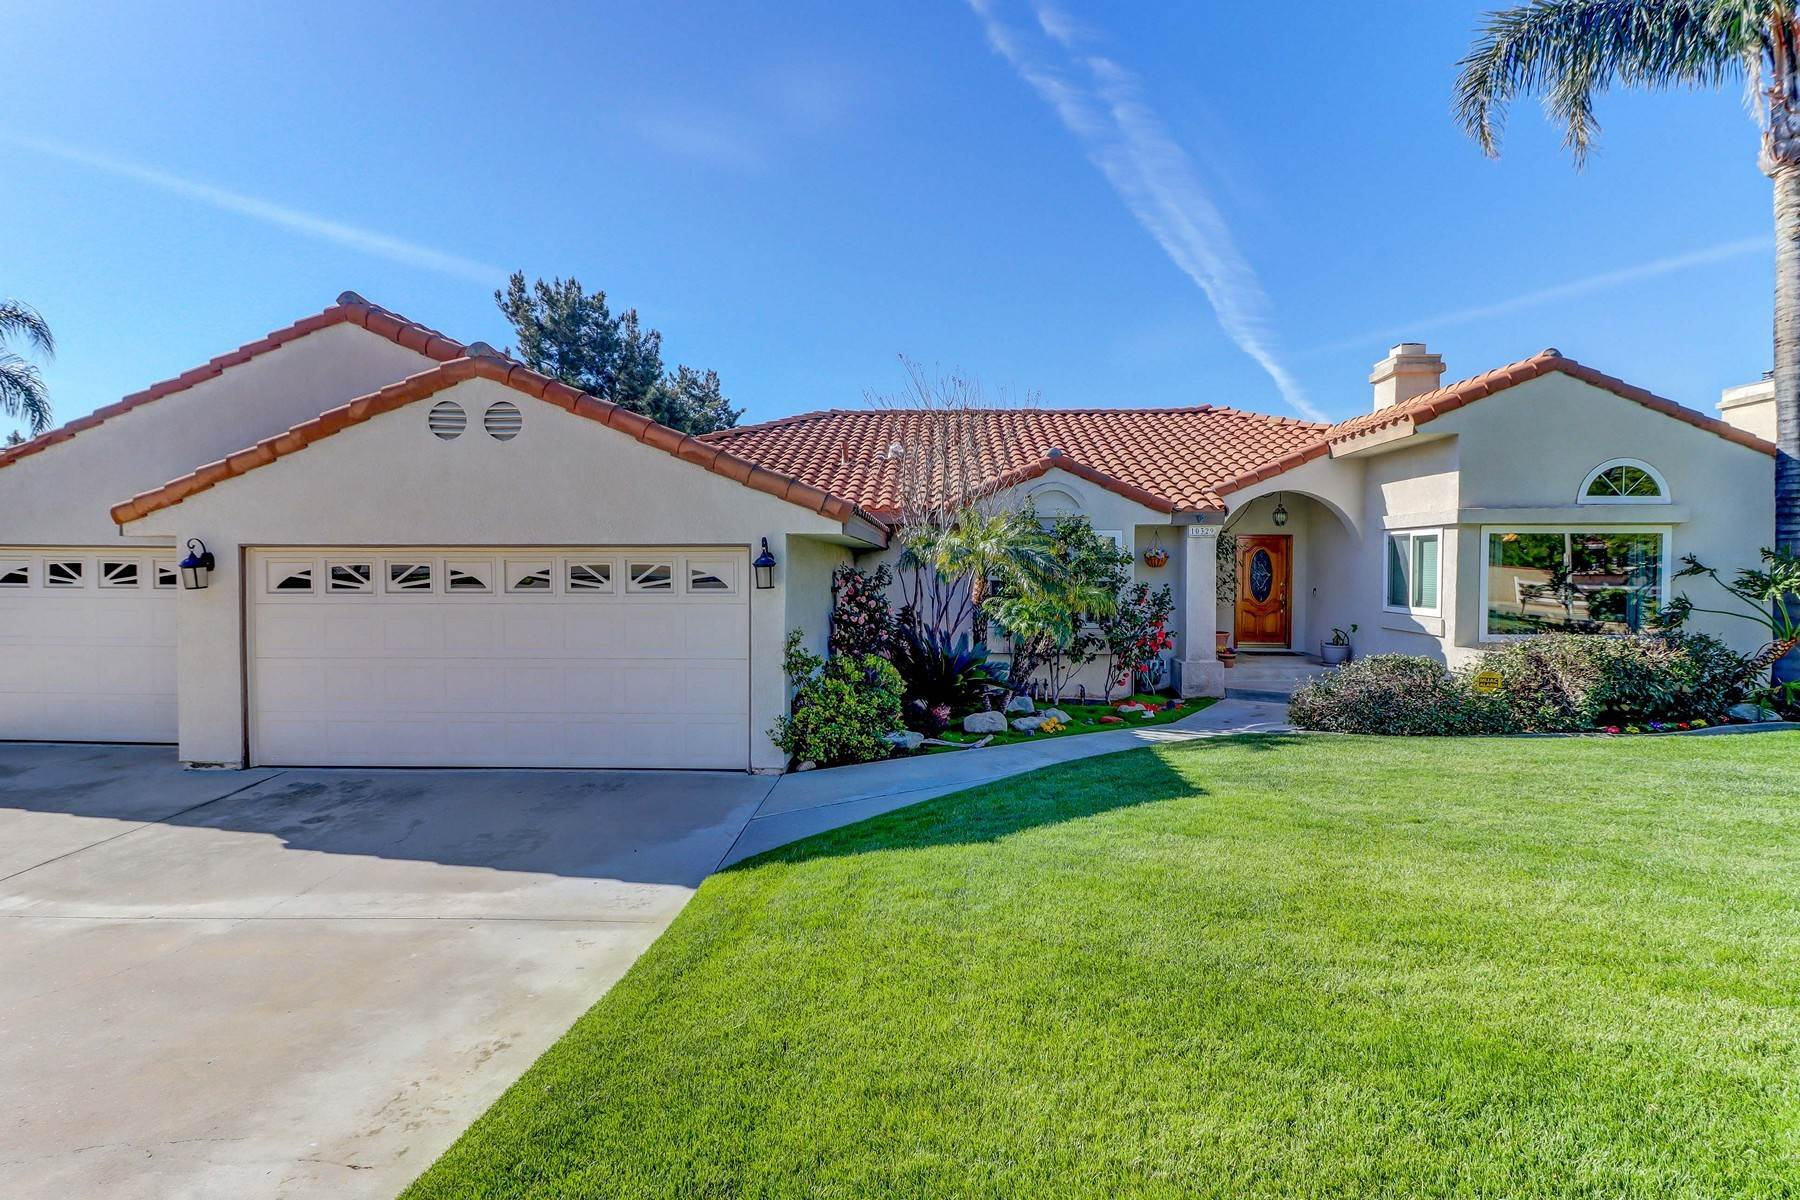 Single Family Homes por un Venta en 10329 Vista Grove Street, Rancho Cucamonga, CA 91737 10329 Vista Grove Street Rancho Cucamonga, California 91737 Estados Unidos